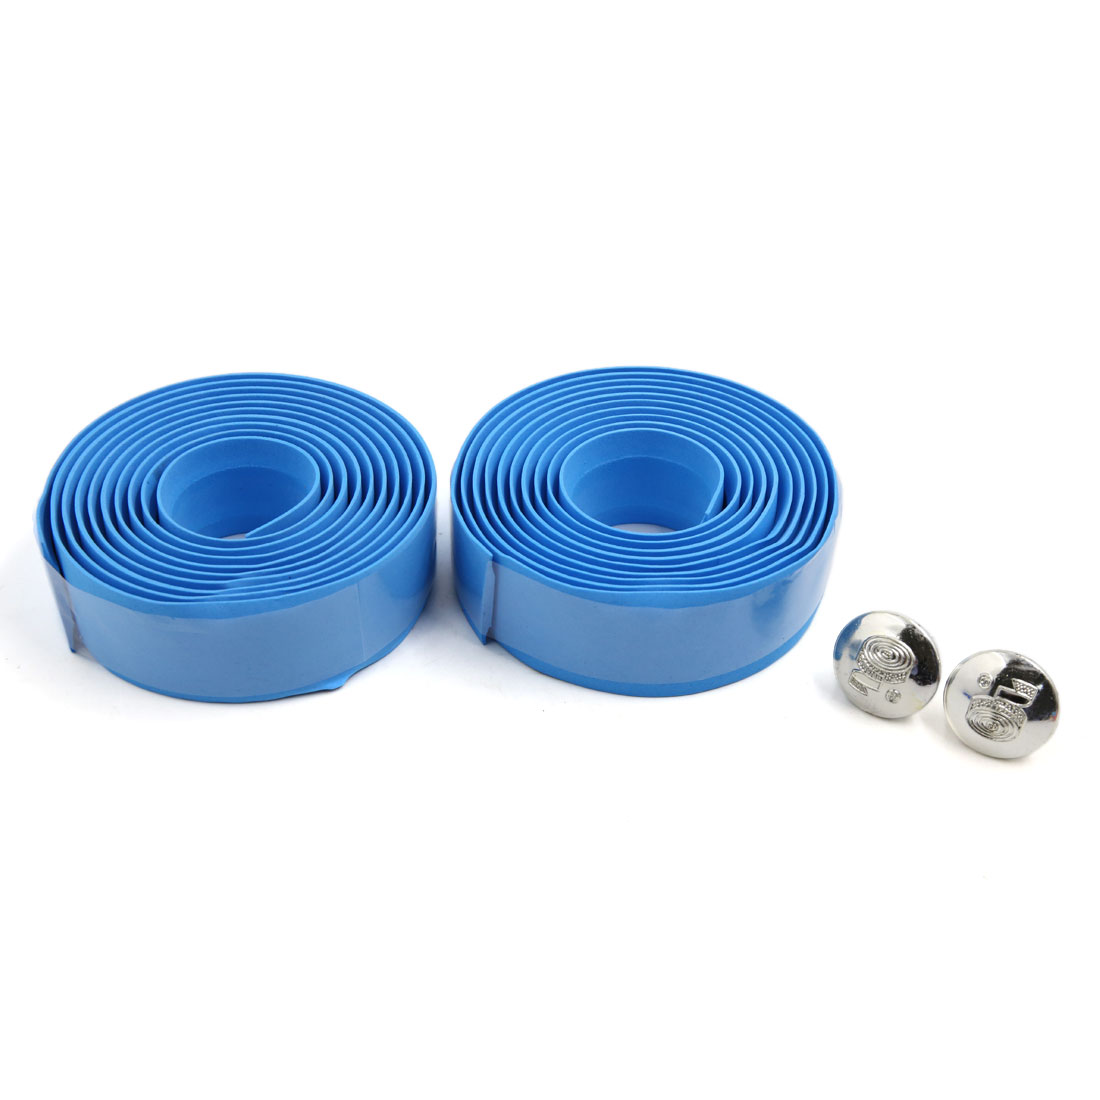 2 Pcs Blue Road Bike Cycling Handlebar Non-slip Tape Wrap Bicycle Handle Belt